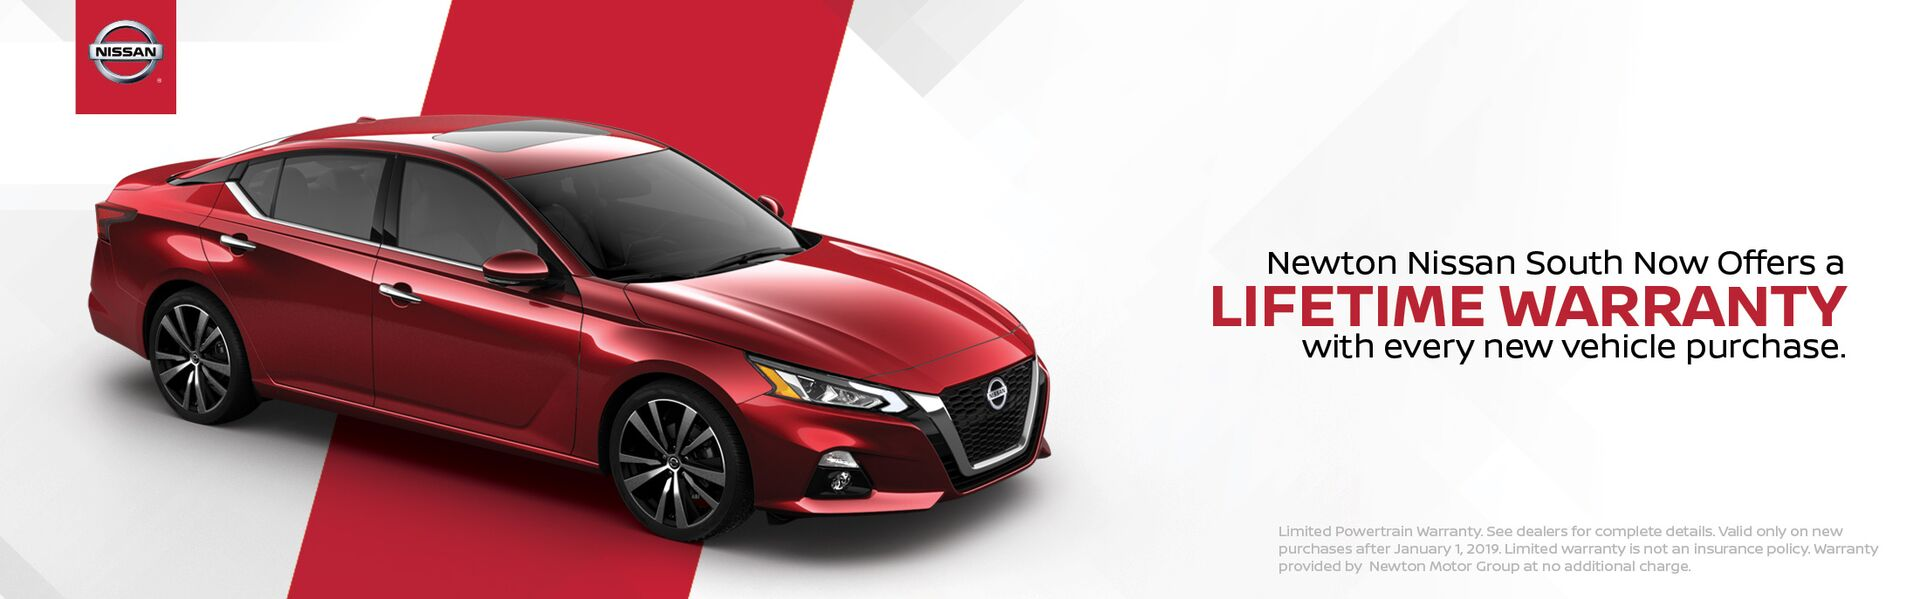 Newton Nissan South Lifetime Warranty